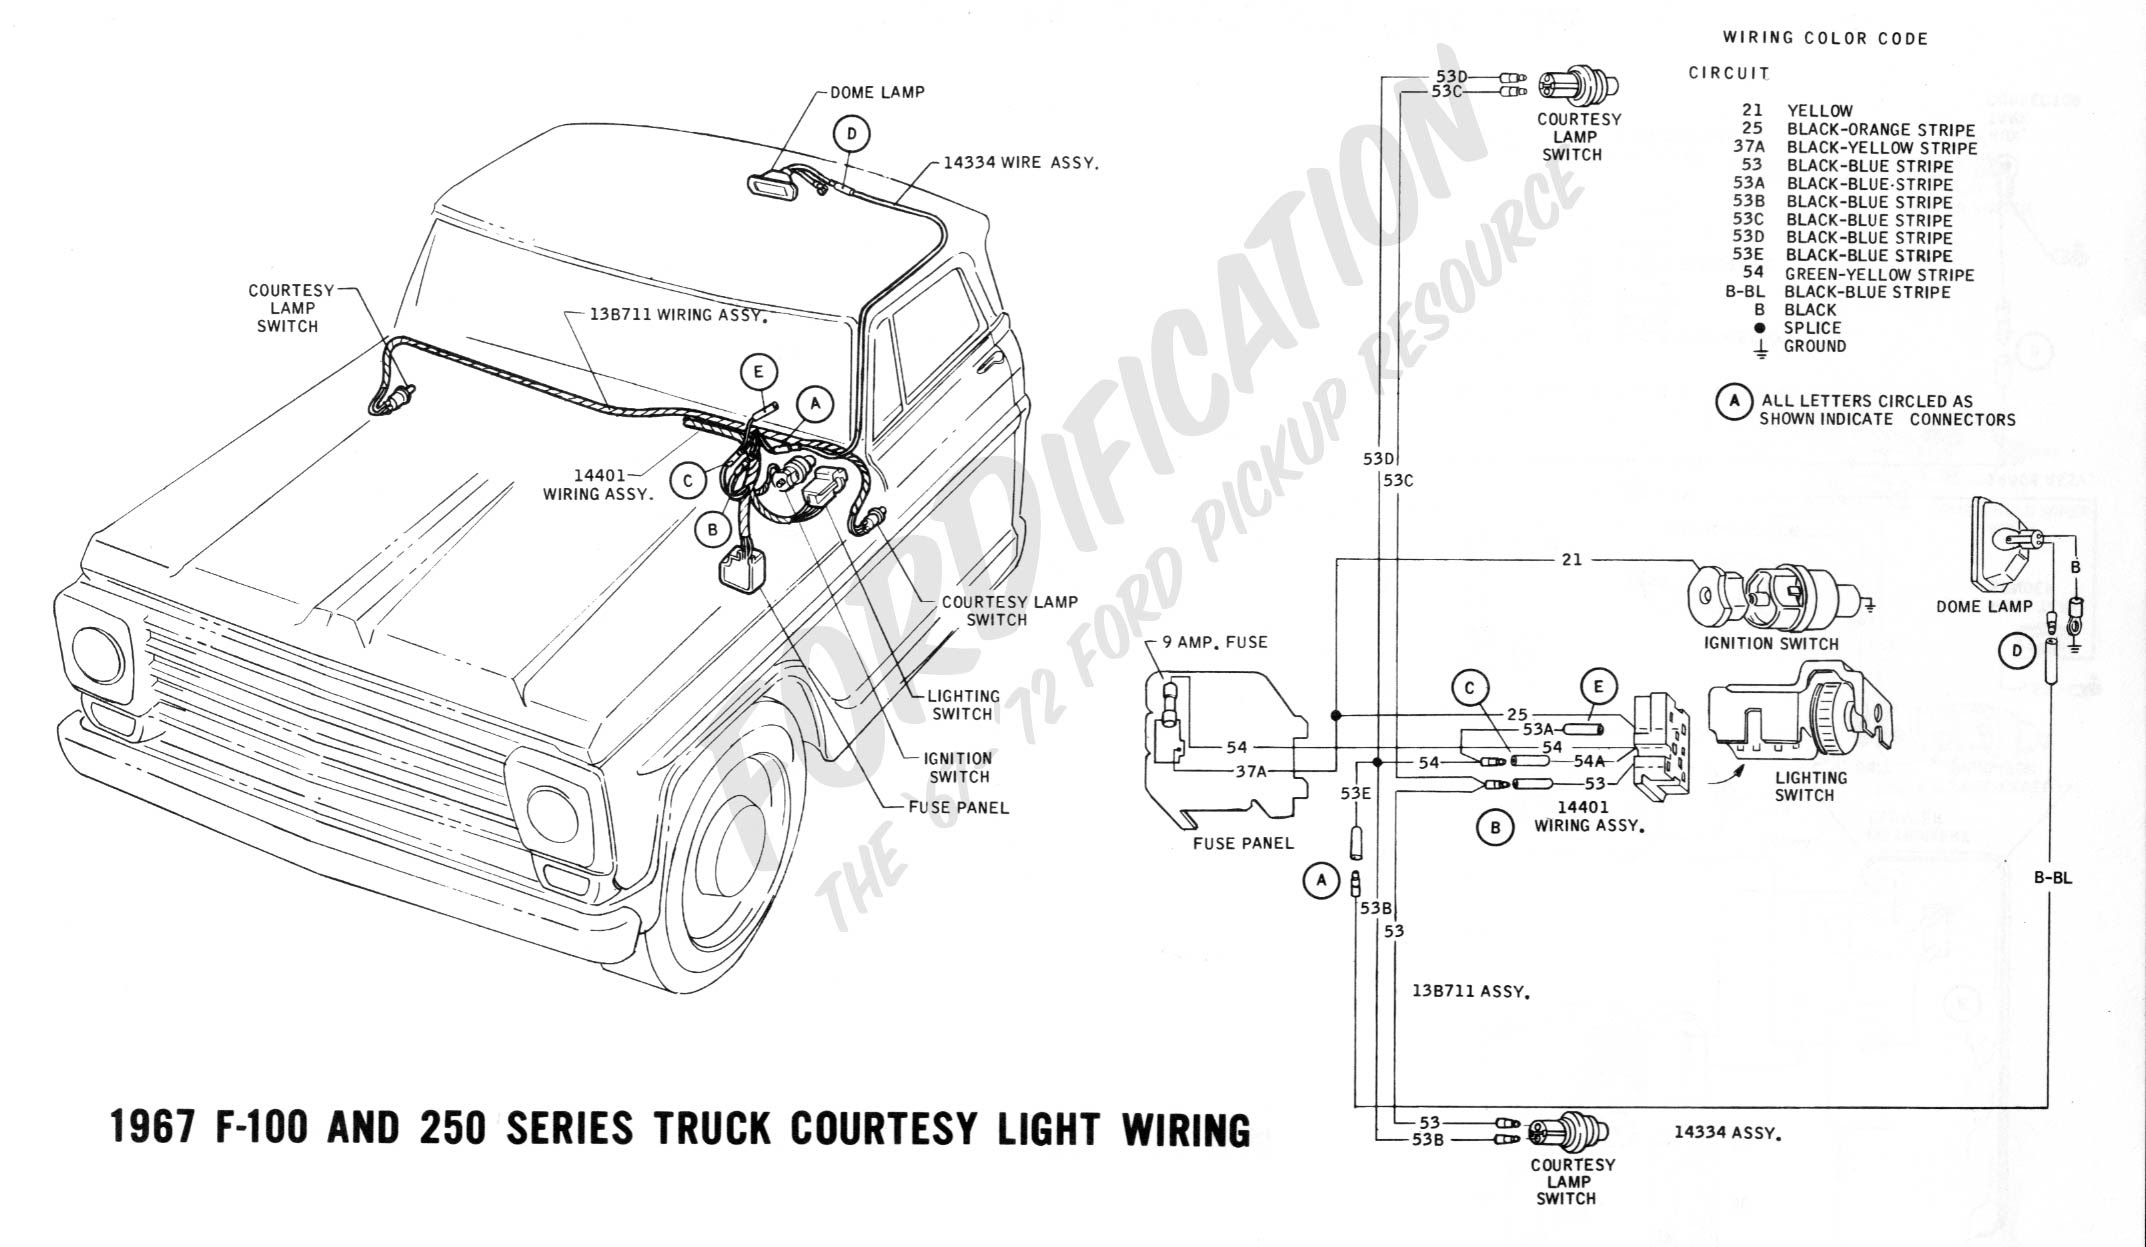 1968 Ford F 250 Camper Special Wiring Diagram Access Control Panel Wiring Valkyrie Nescafe Jeanjaures37 Fr